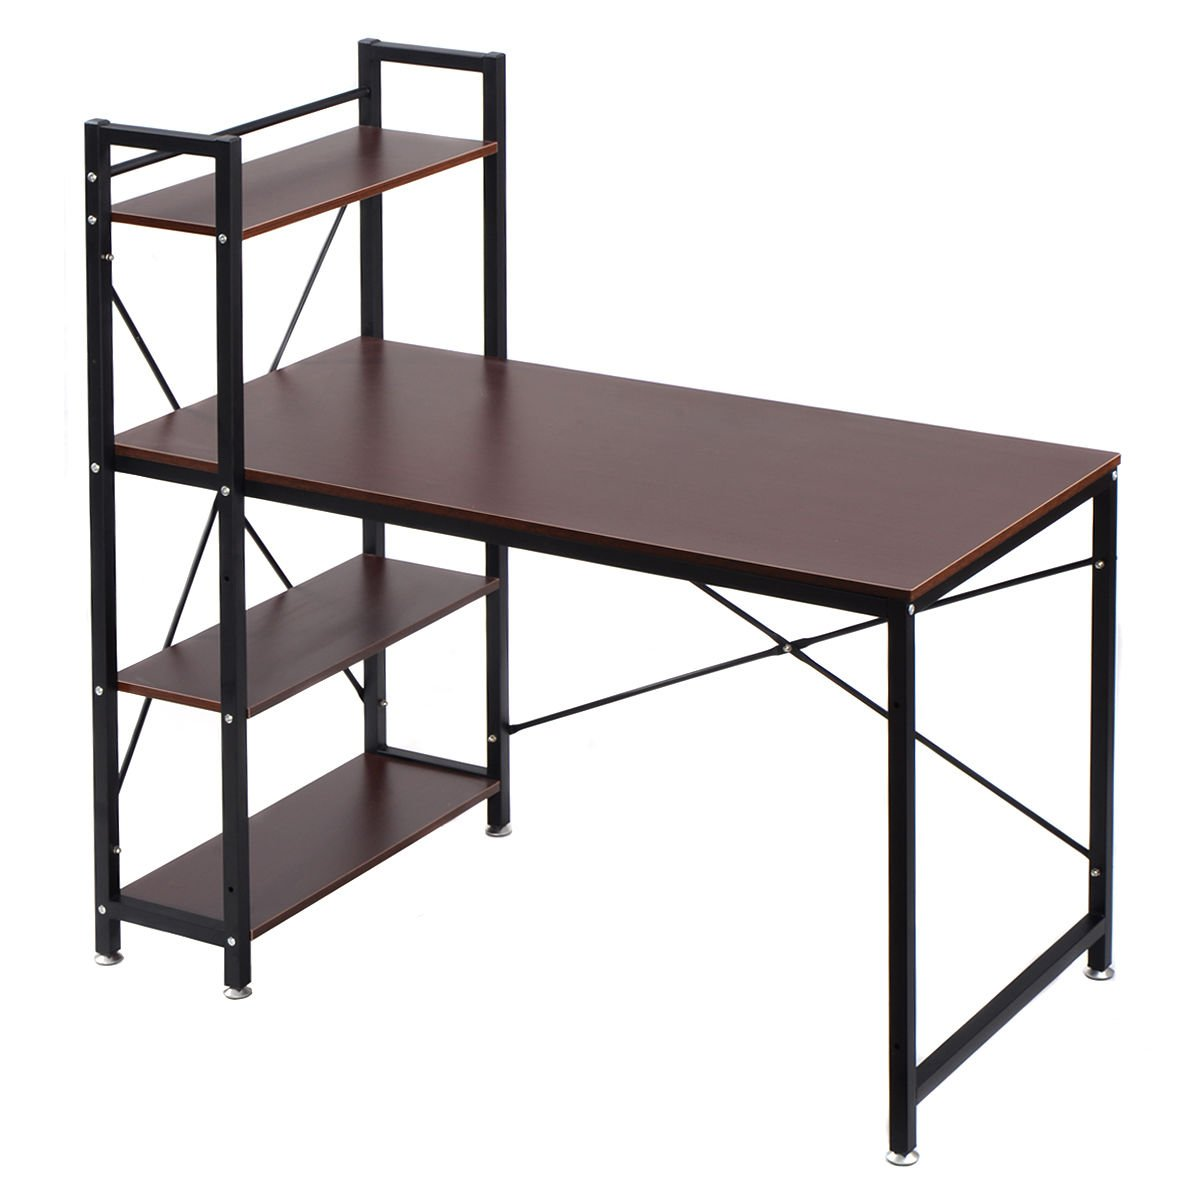 TANGKULA Computer Desk Modern Style Writing Study Table with 4 Tier Bookshelves Home Office Compact Multipurpose Workstation(Brown)